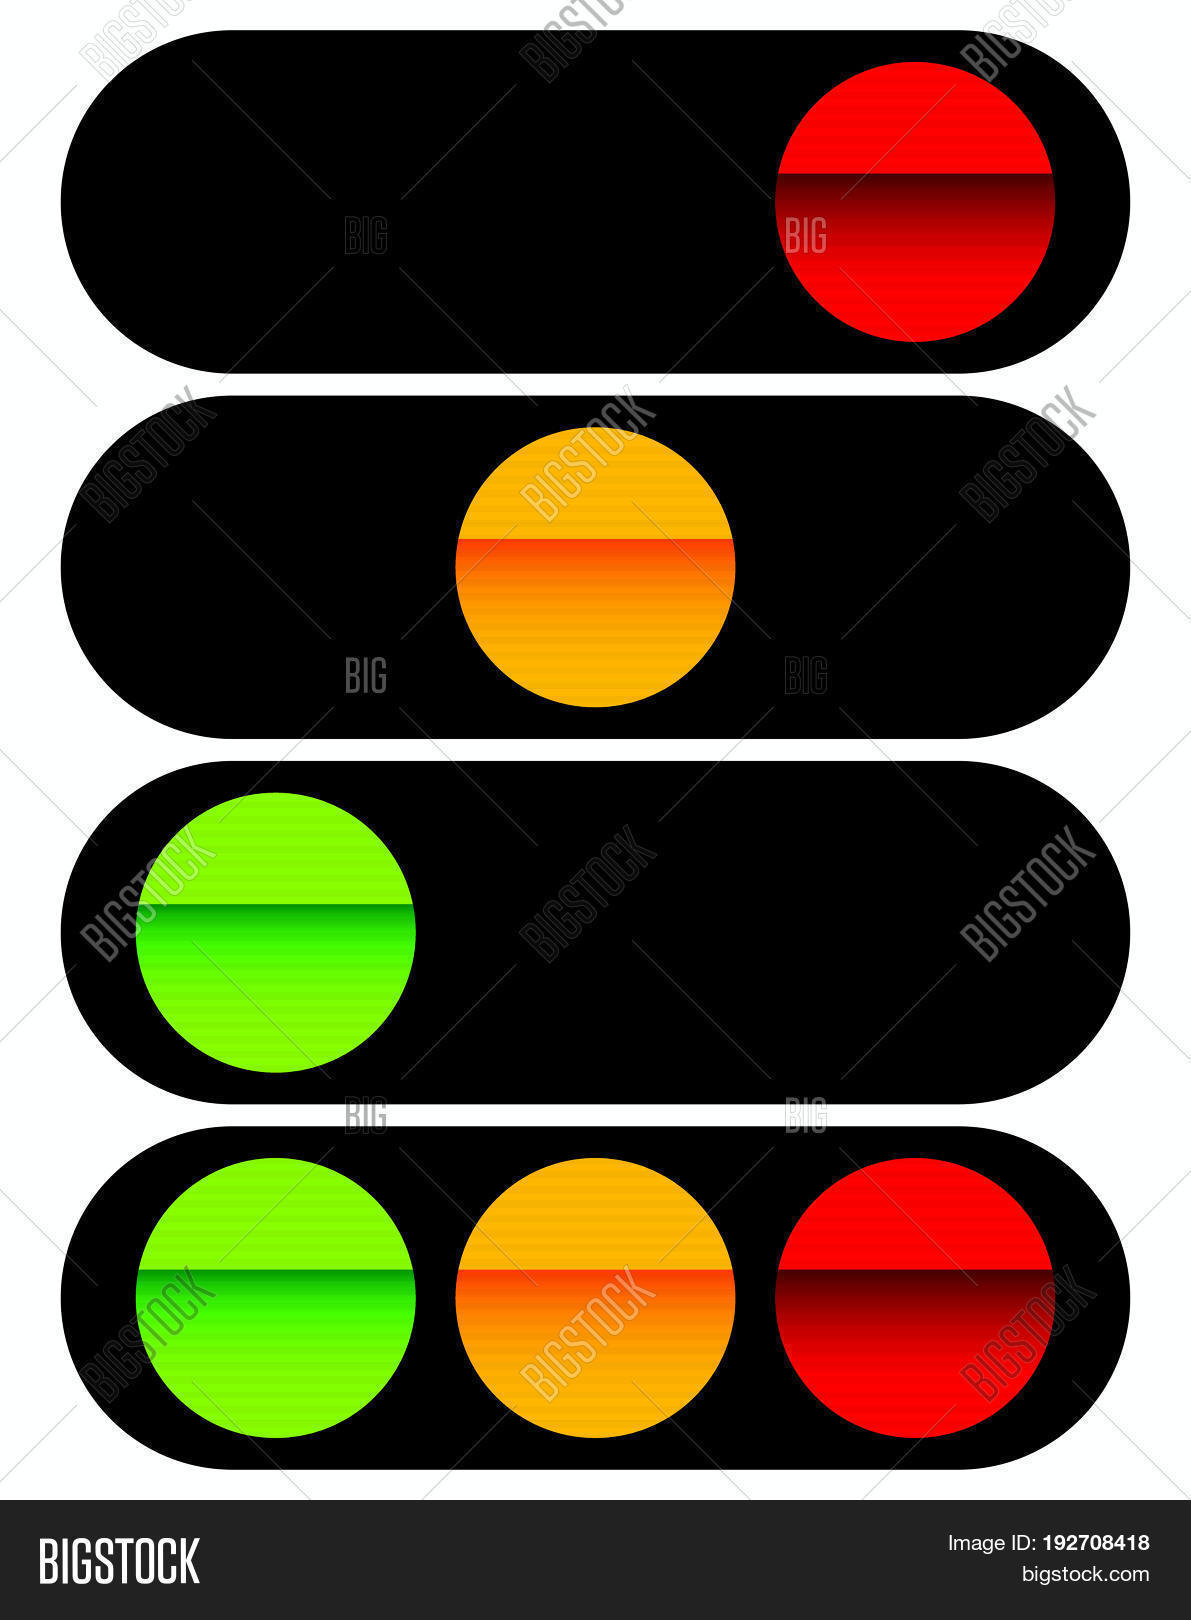 Traffic Light, Traffic Lamp Icon Vector  for Traffic Light Red Icon  585eri